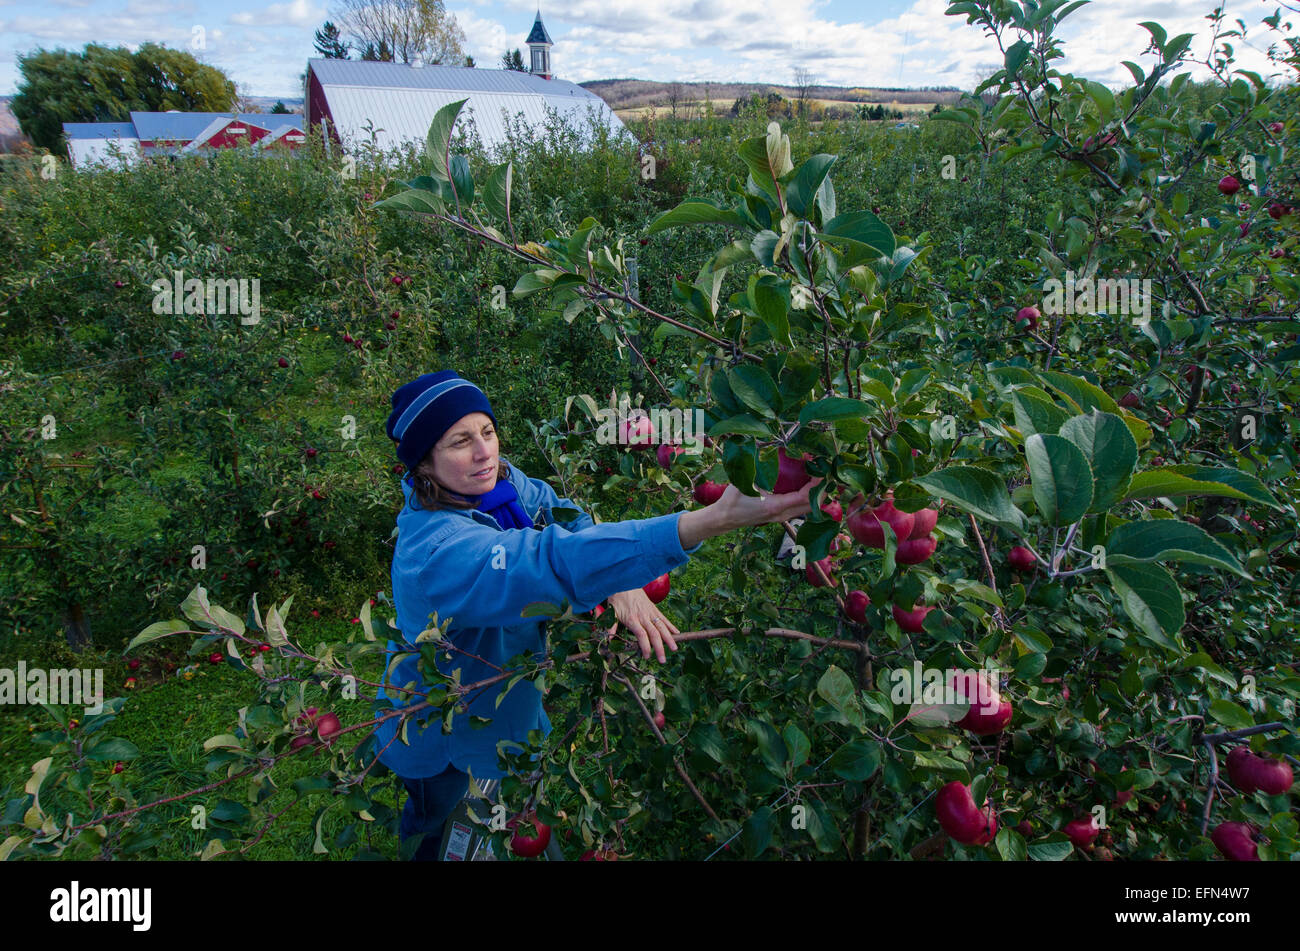 A picker climbs a ladder to pluck fresh fruit from an apple tree at an orchard in Lafeyette, New York. - Stock Image